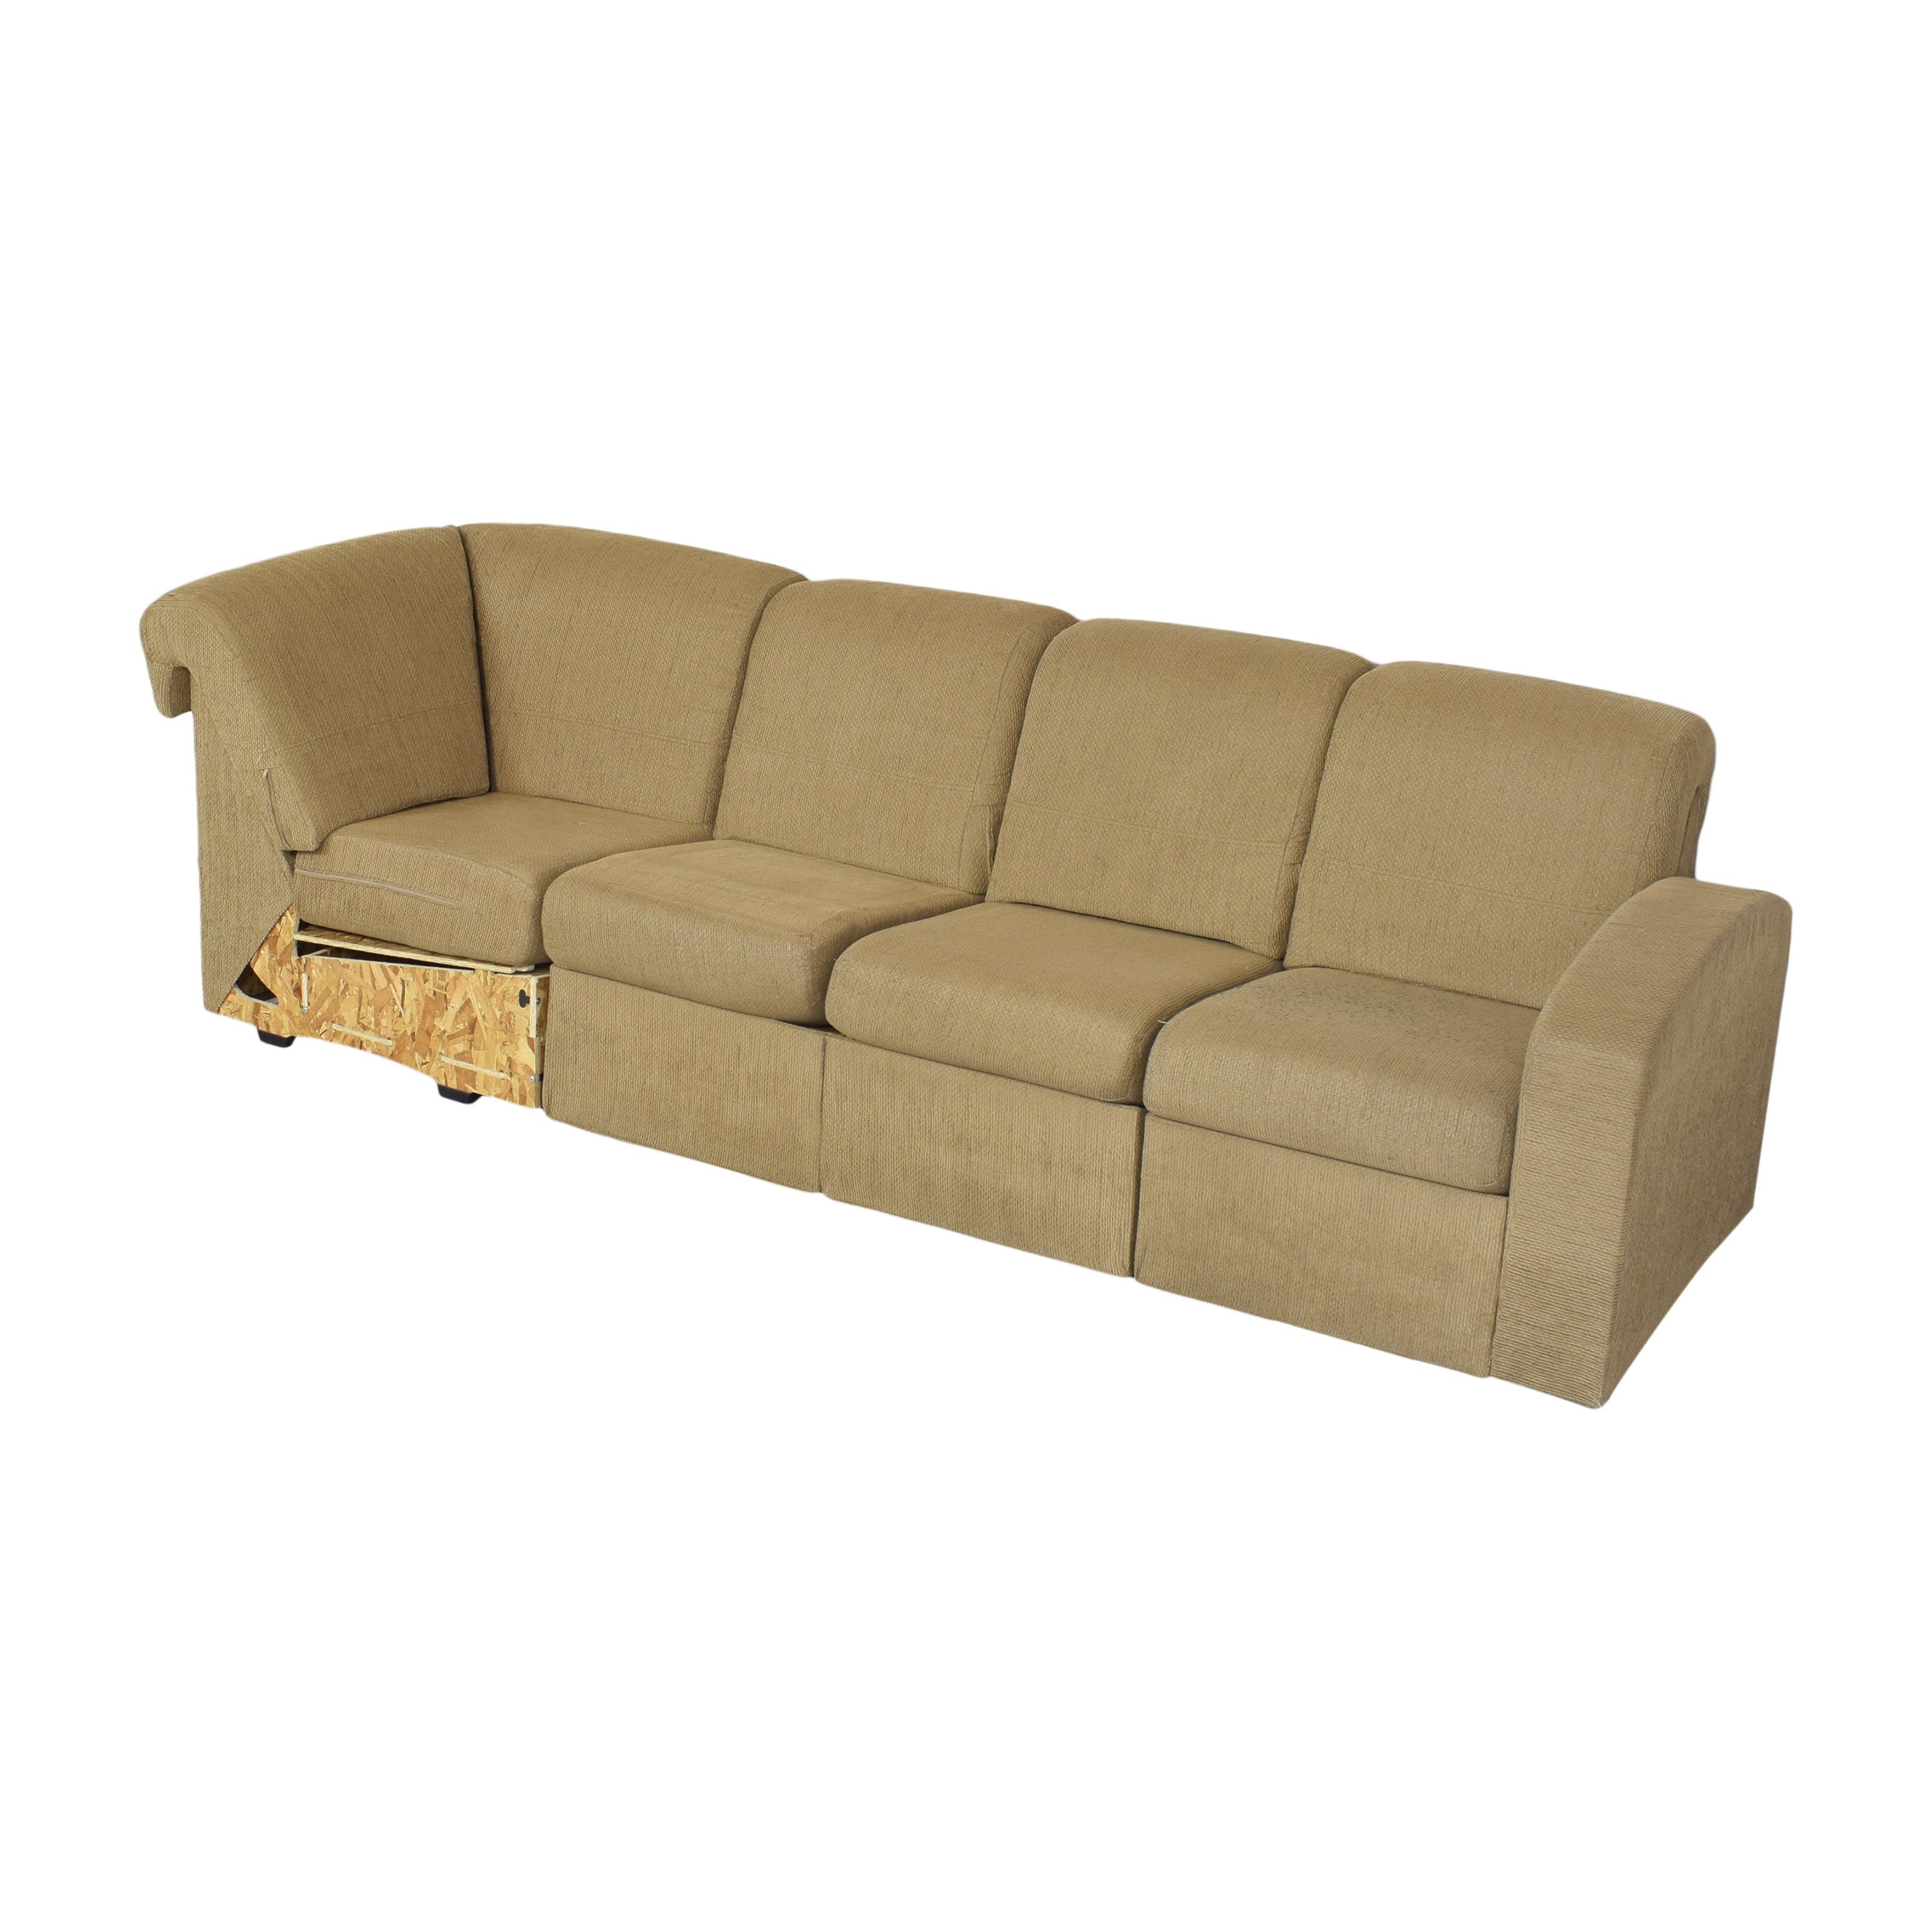 buy Home Reserve Home Reserve Brooks Sectional Couch online